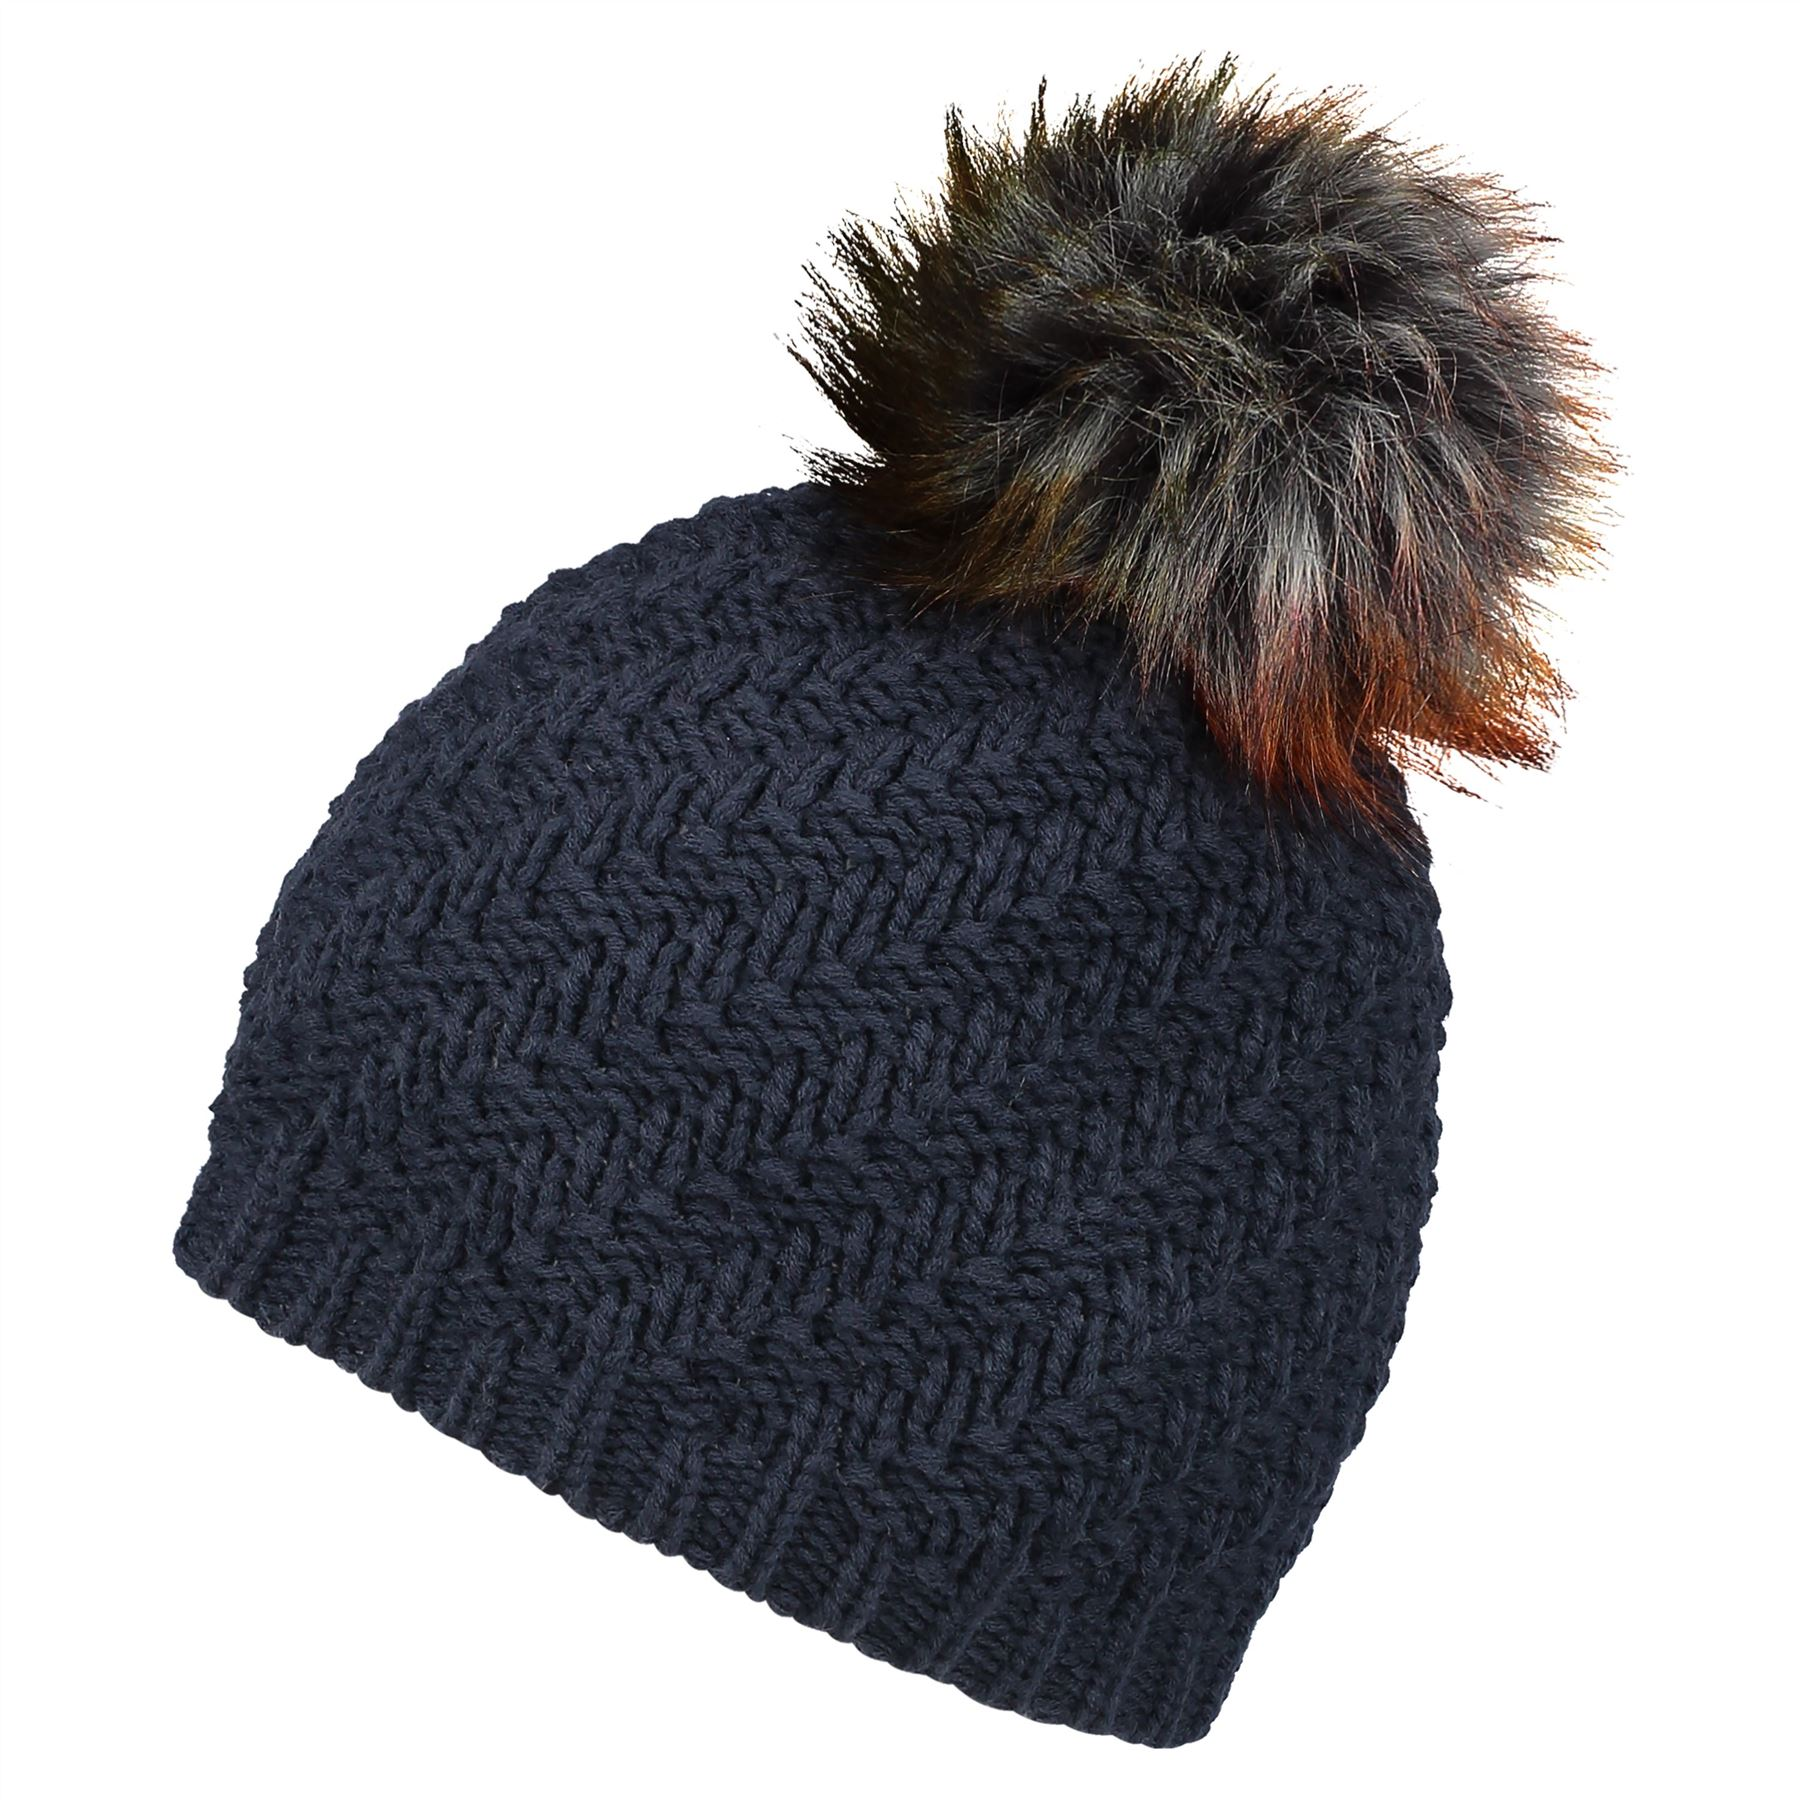 Image of Faux Fur Pom Beanie Hat - Classic Navy - One Size